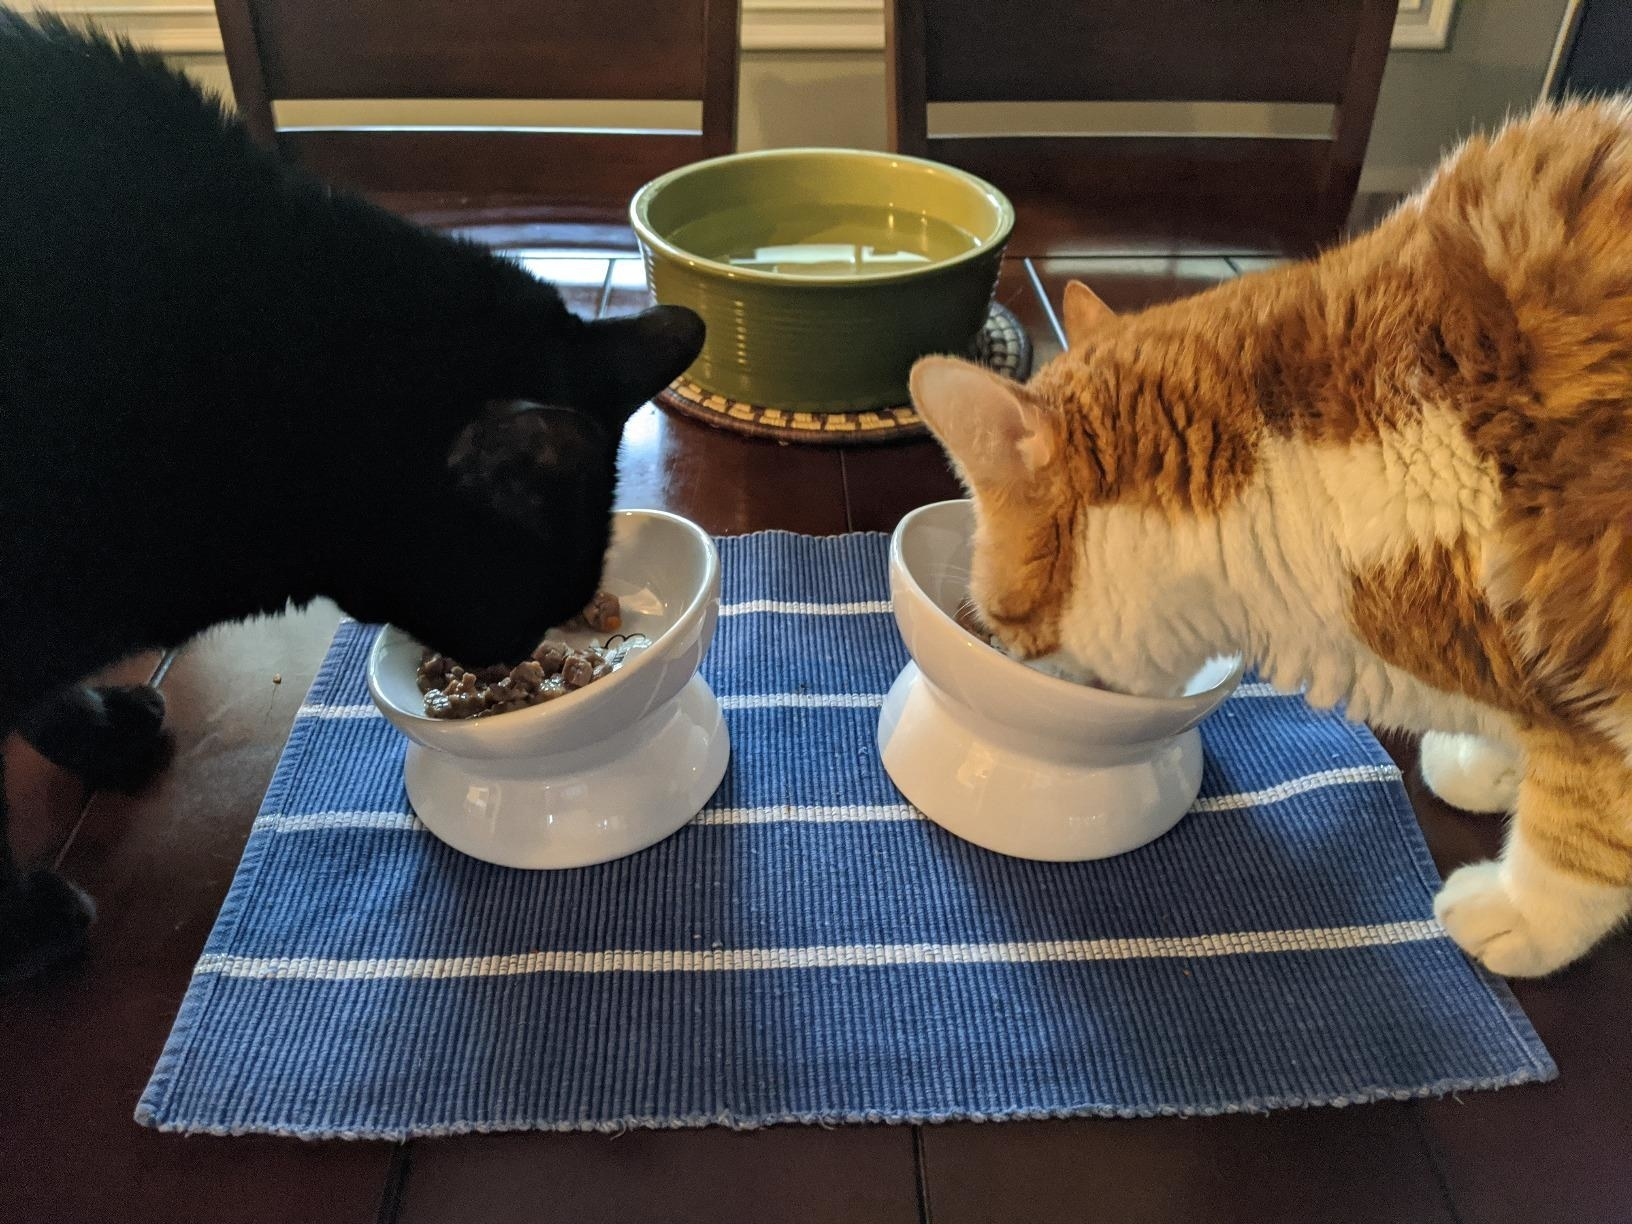 two cats eating out of the bowls